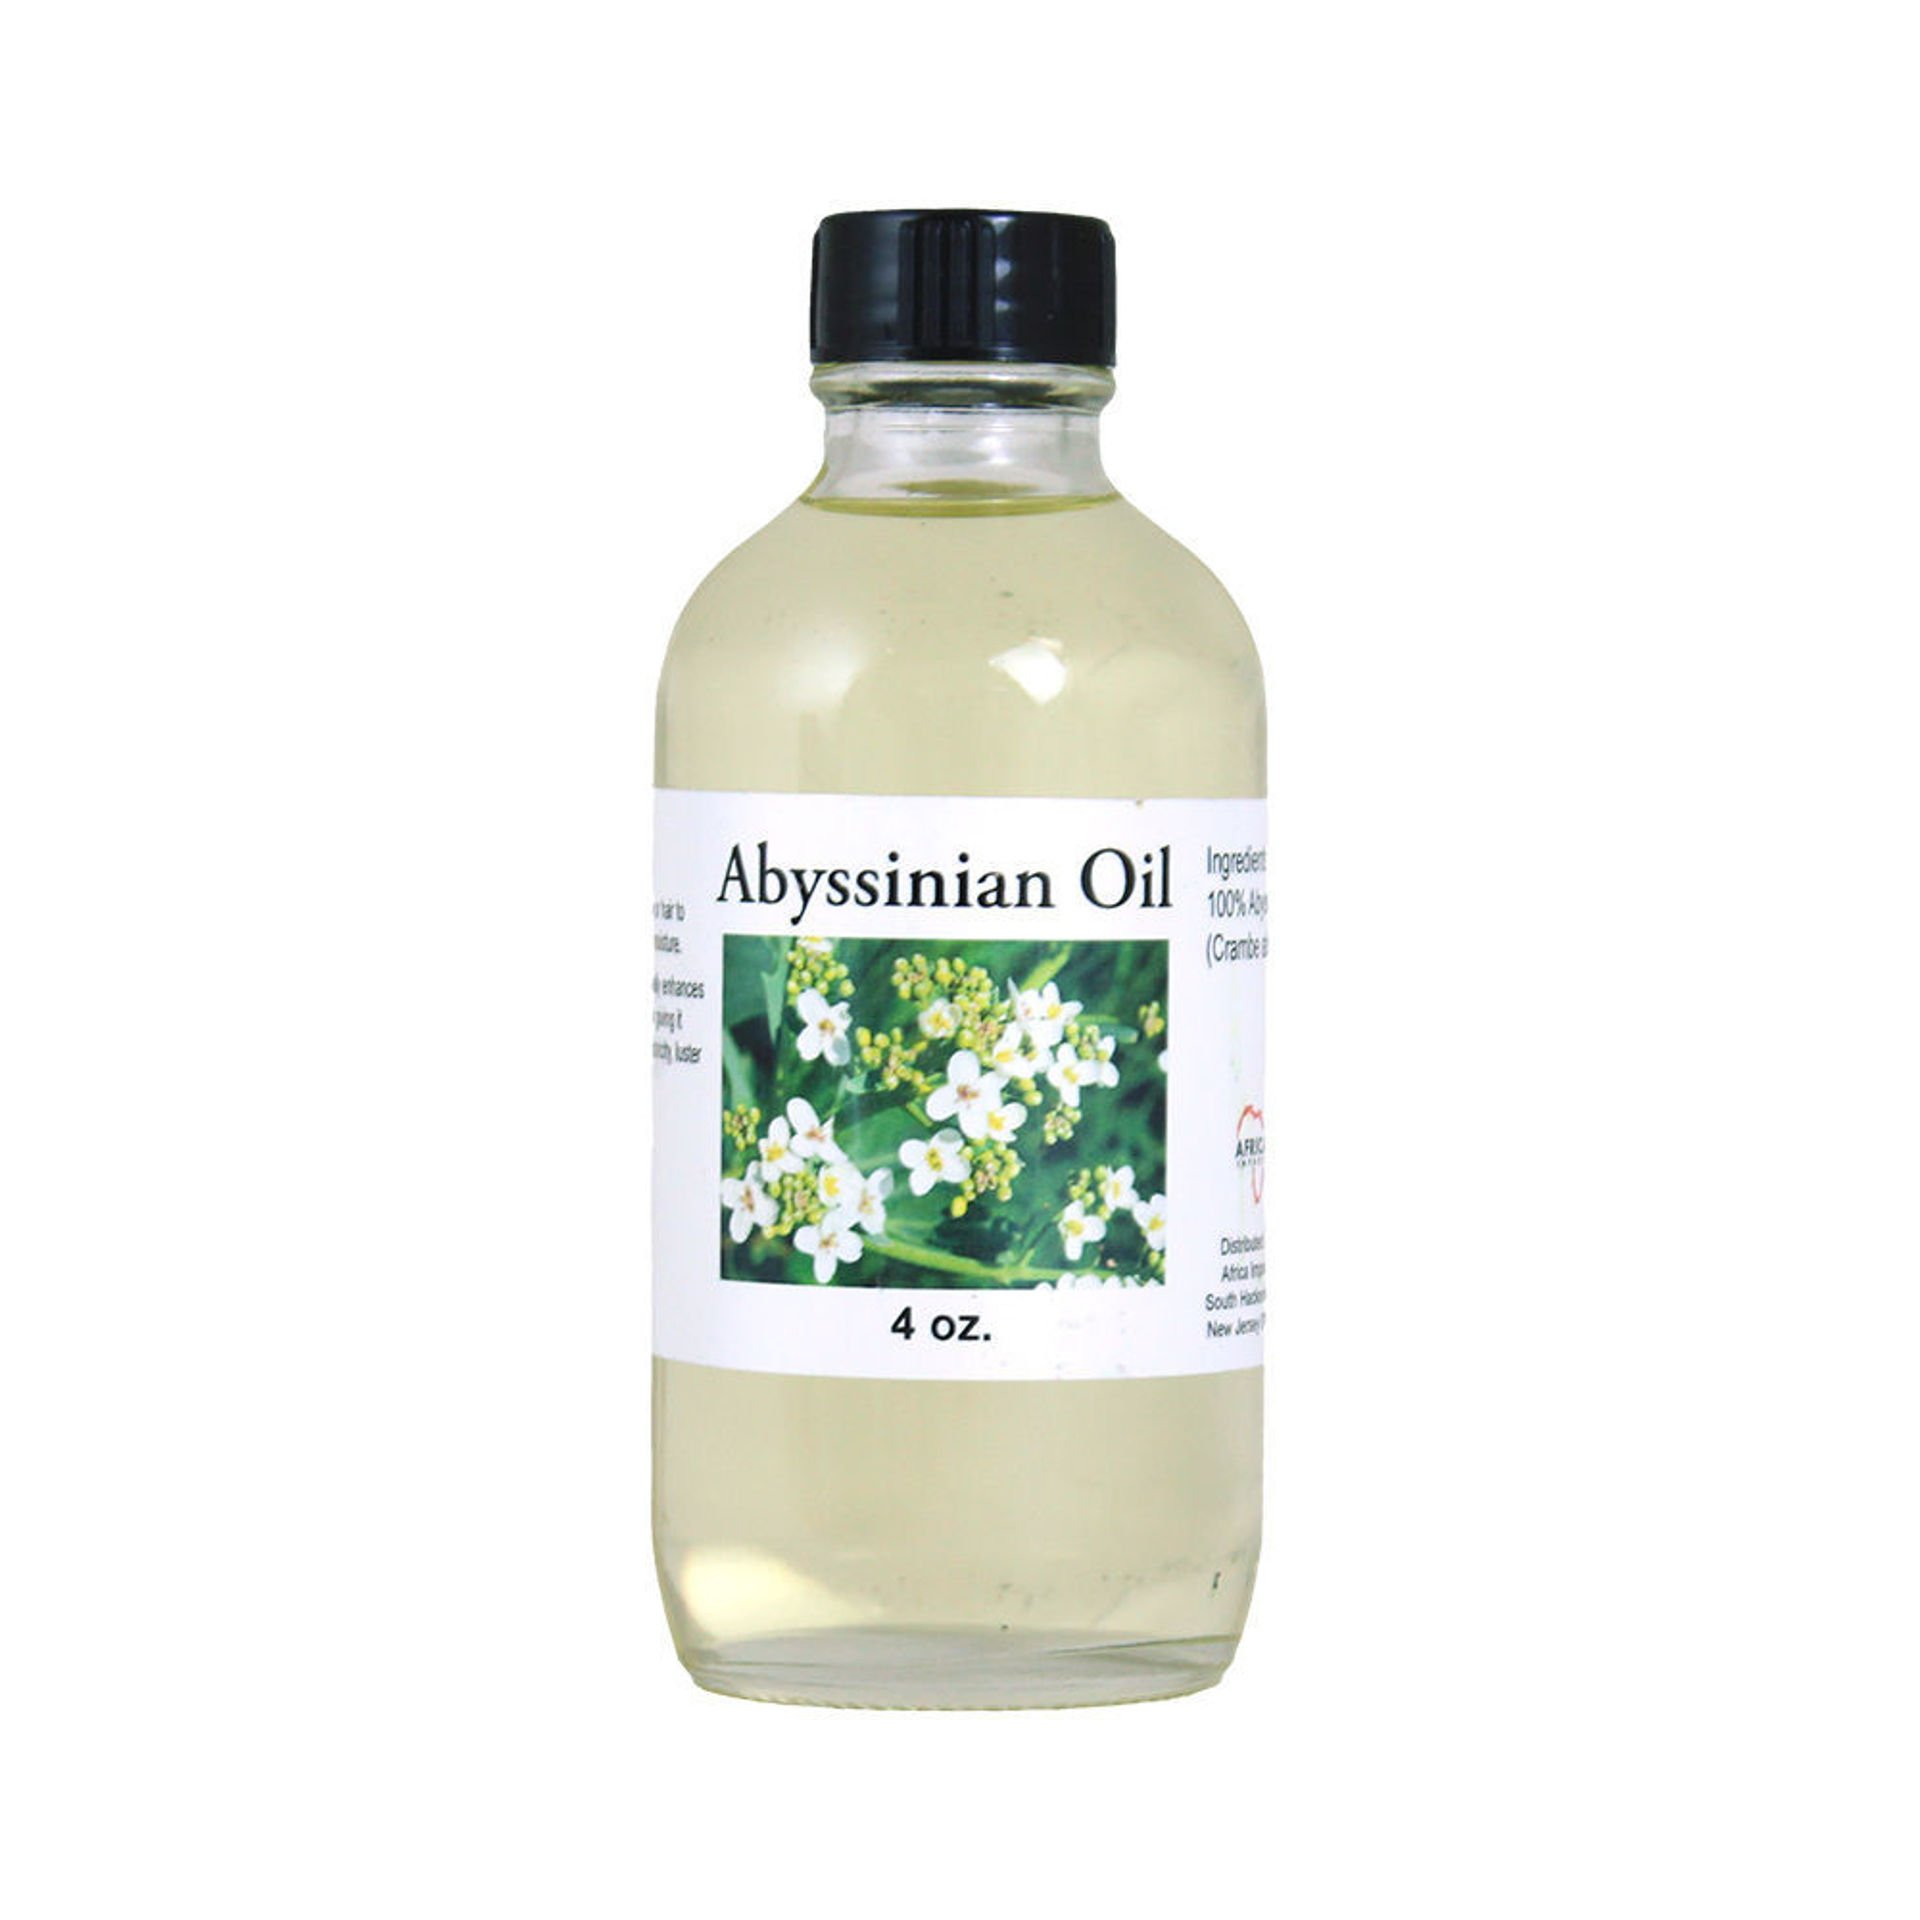 Picture of Abyssinian Oil – 4 oz.